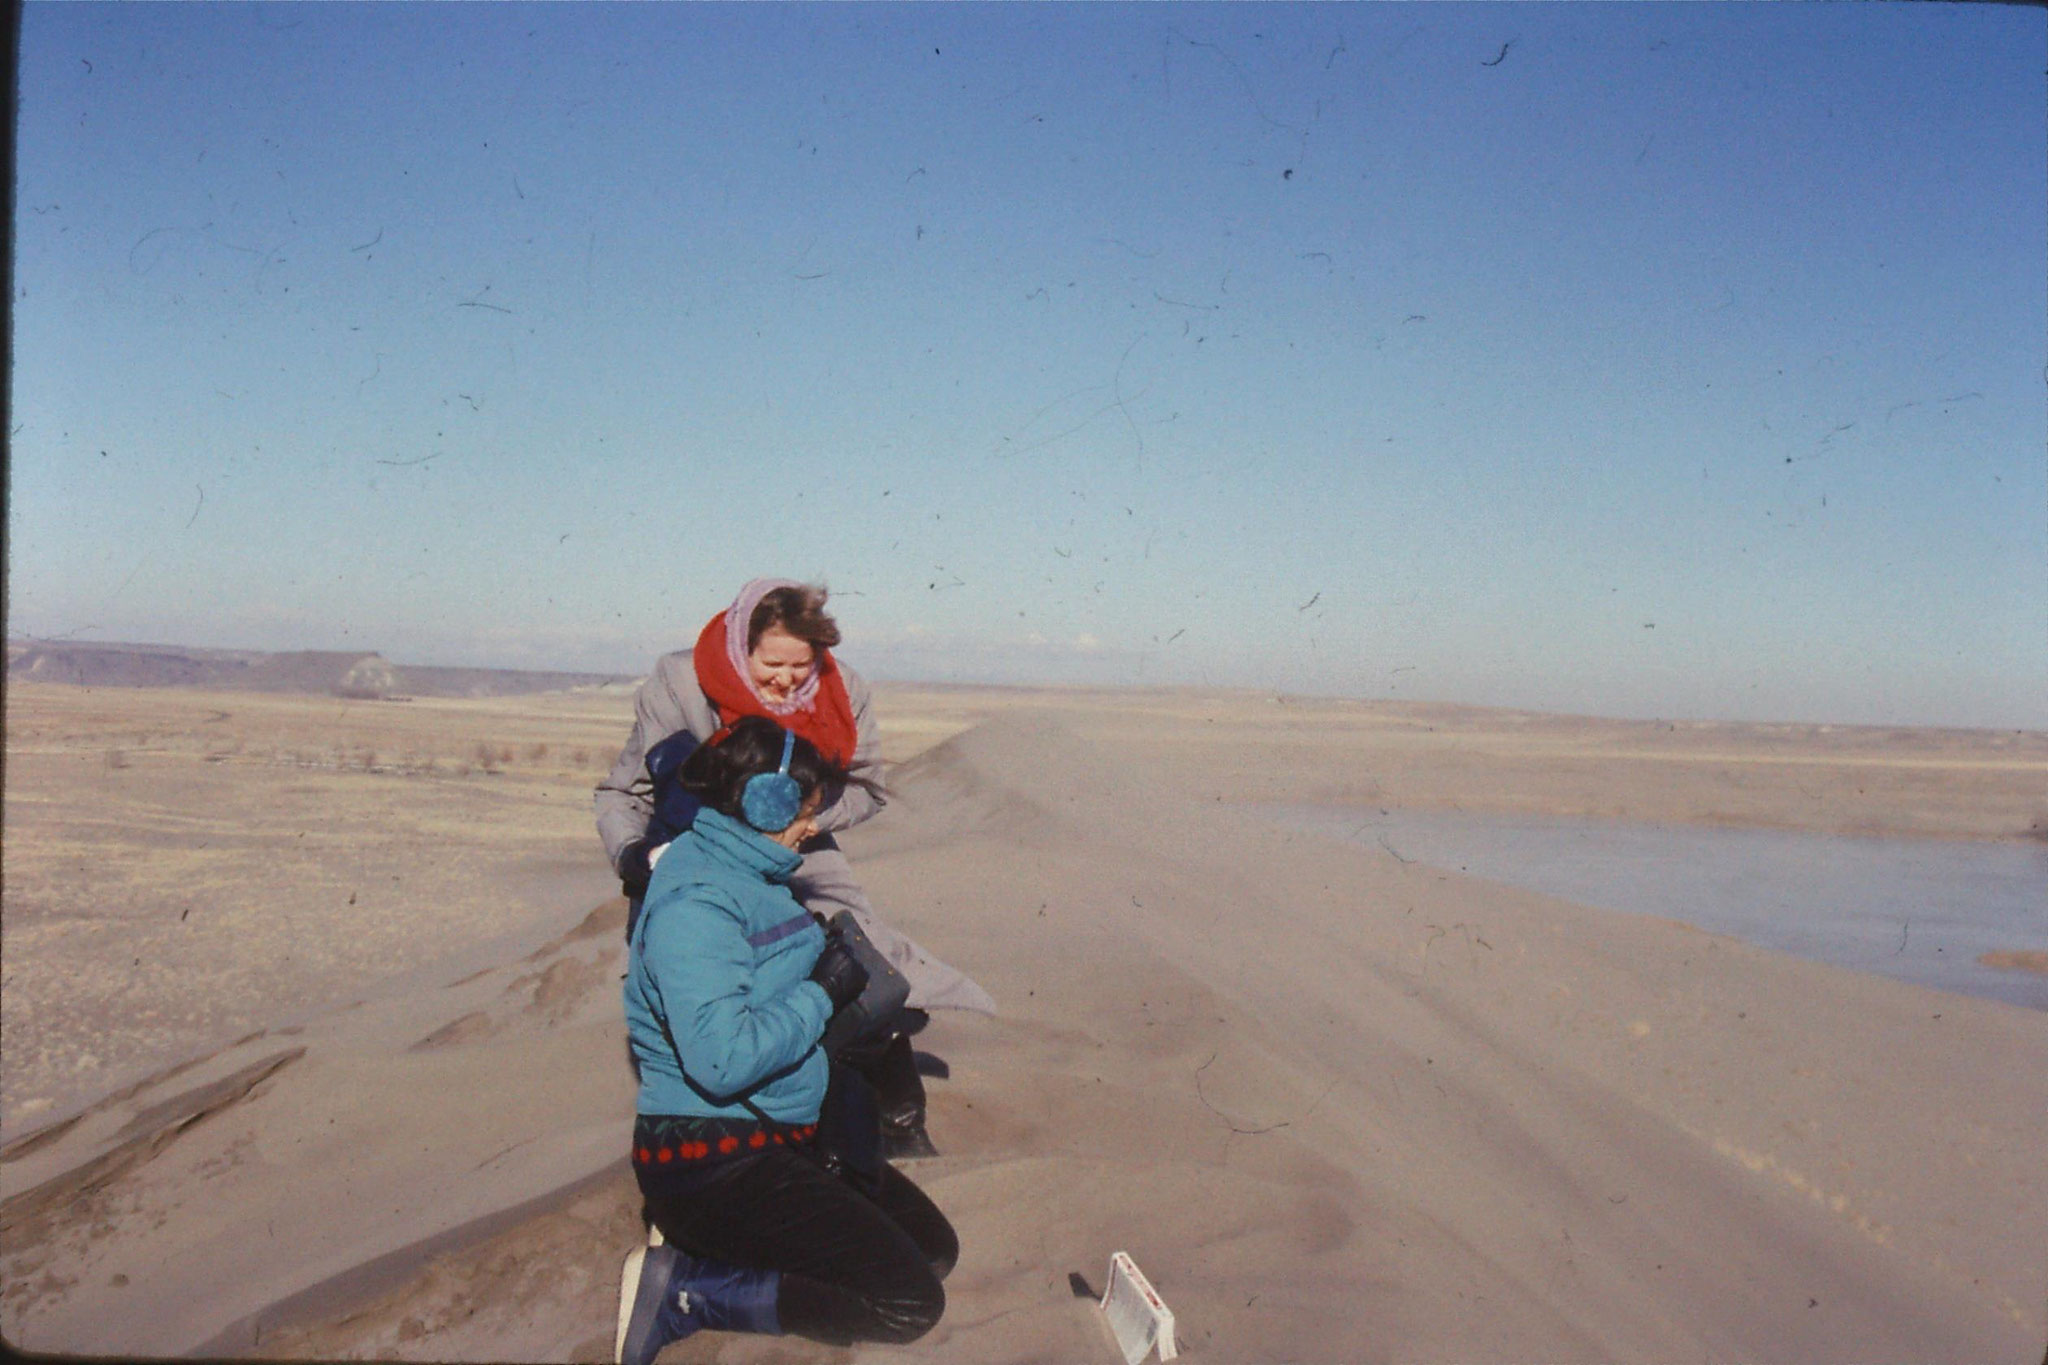 24/1/1991: 33: Bruneau Sand Dunes: E, E, and H